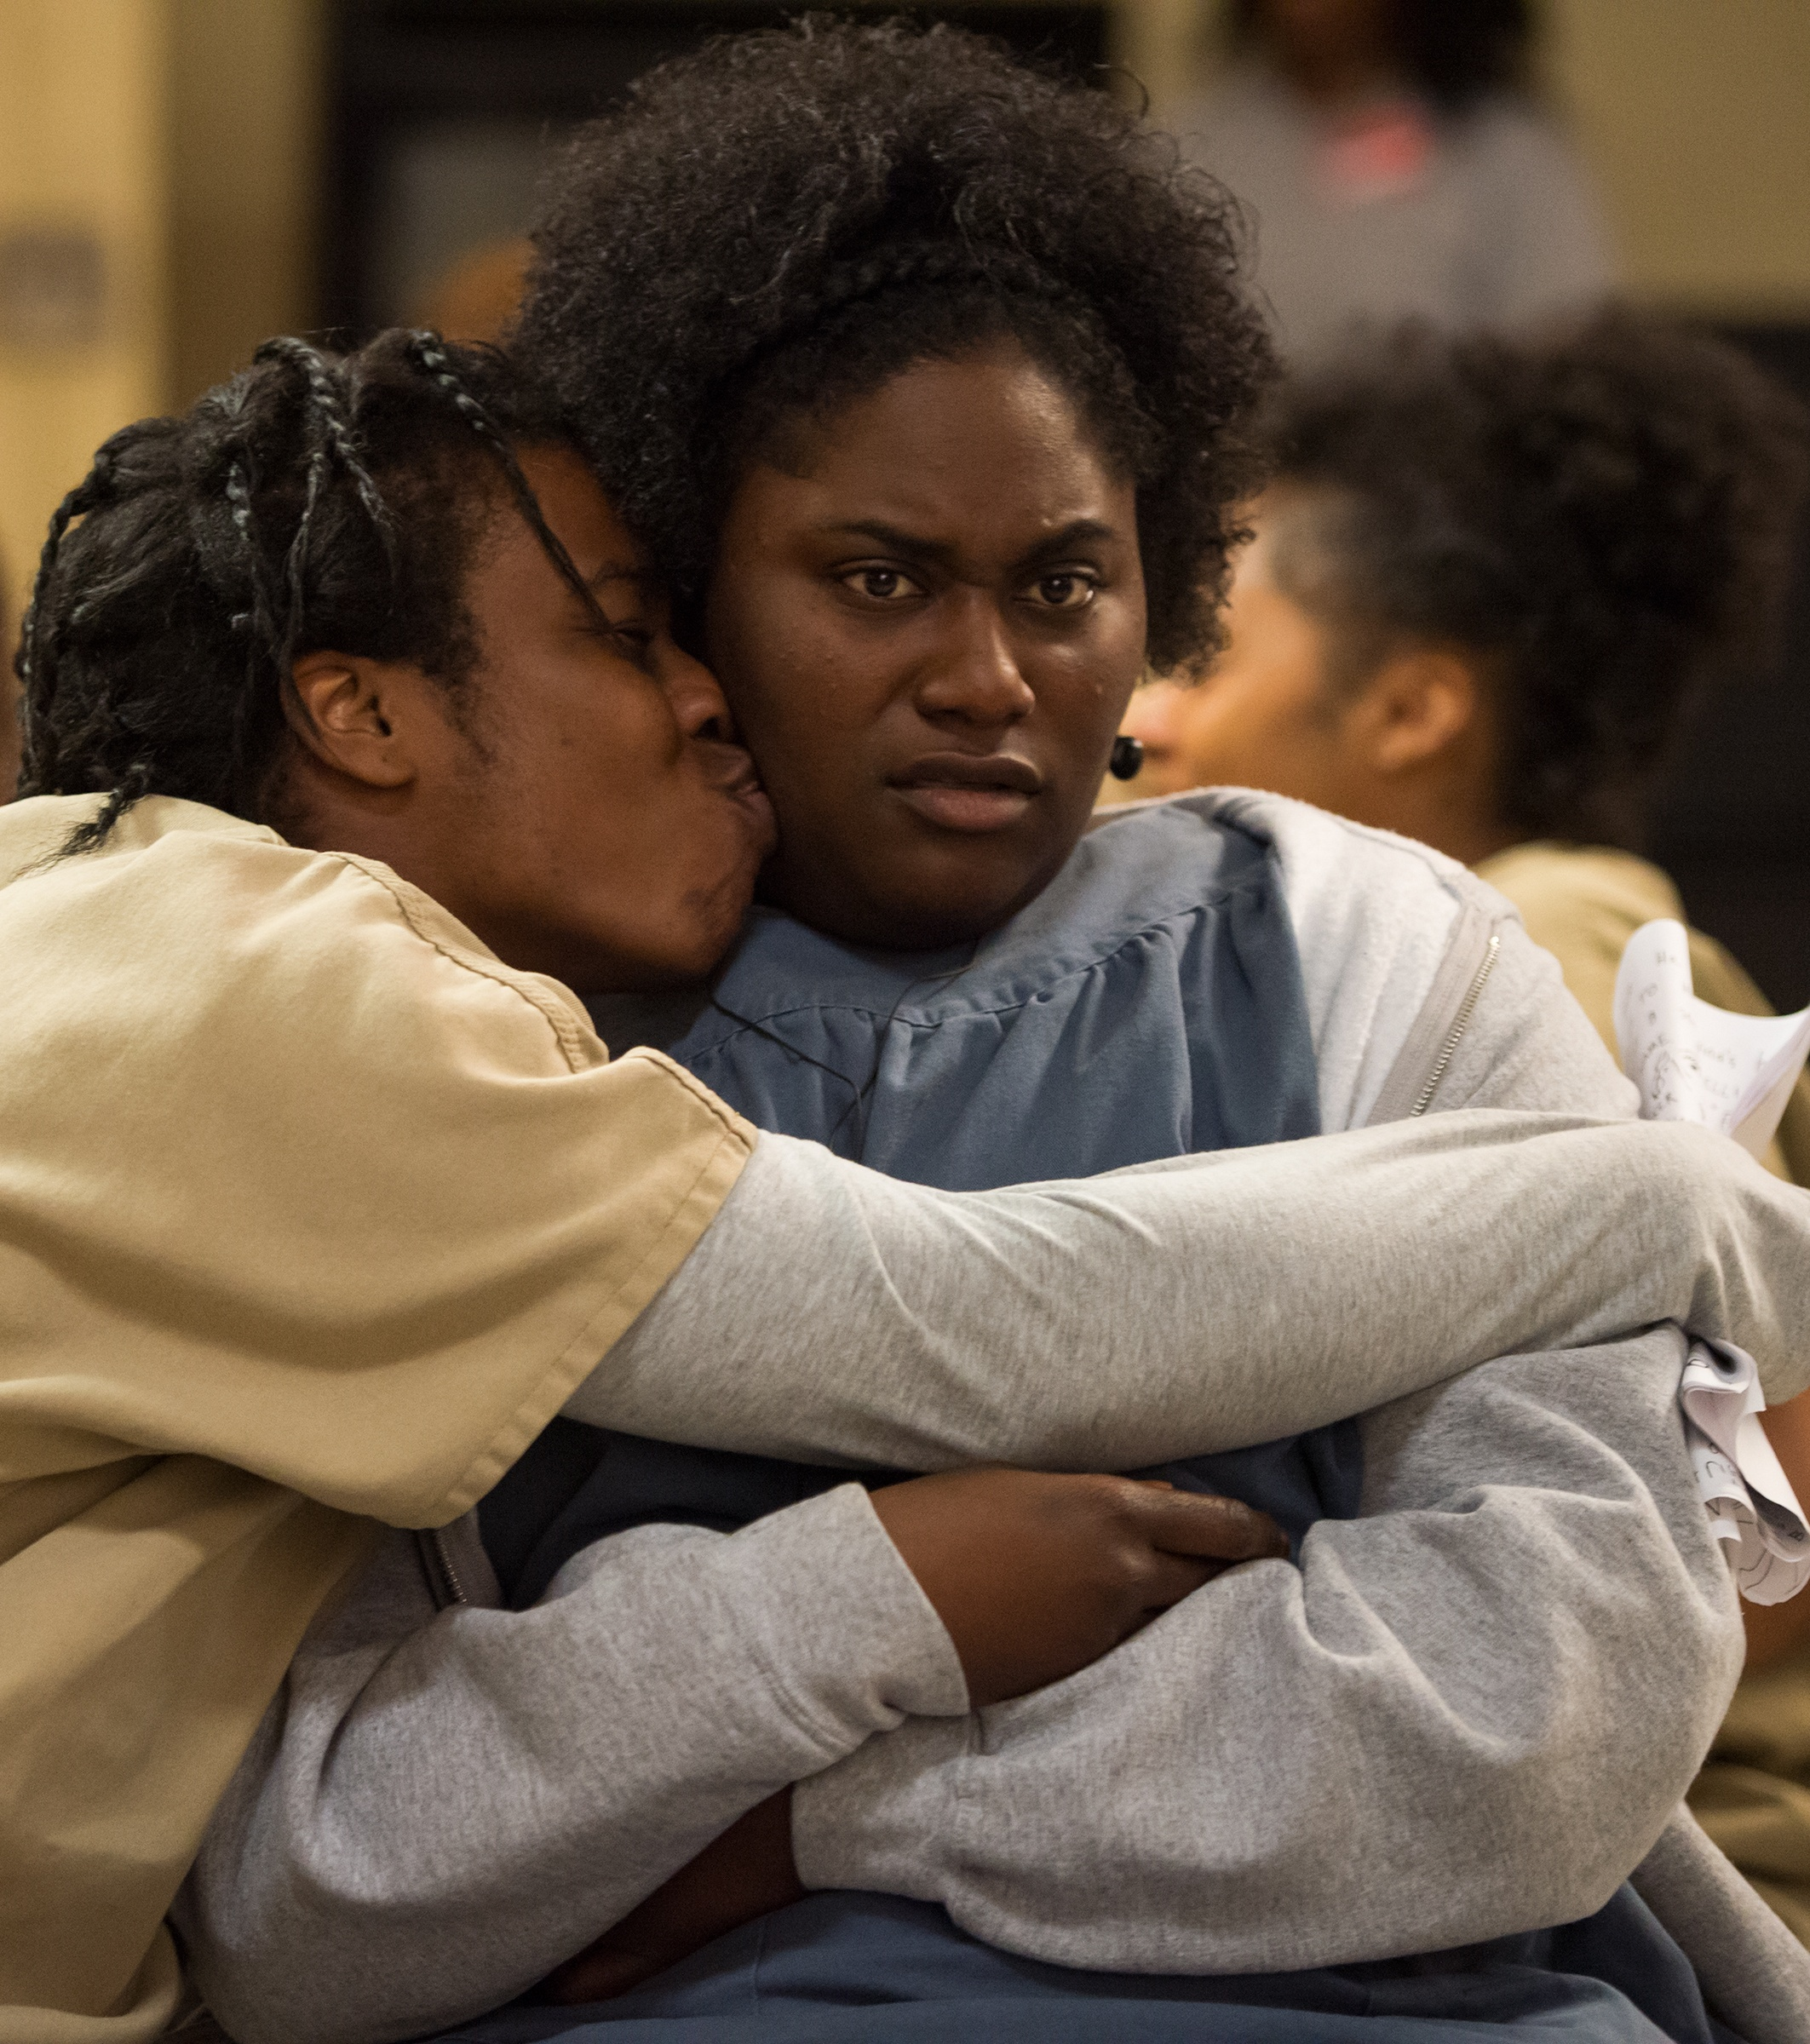 d5191c69 7abe 4cf2 be56 cf6c1a85ddb5 25 Things You Didn't Know About Orange Is The New Black